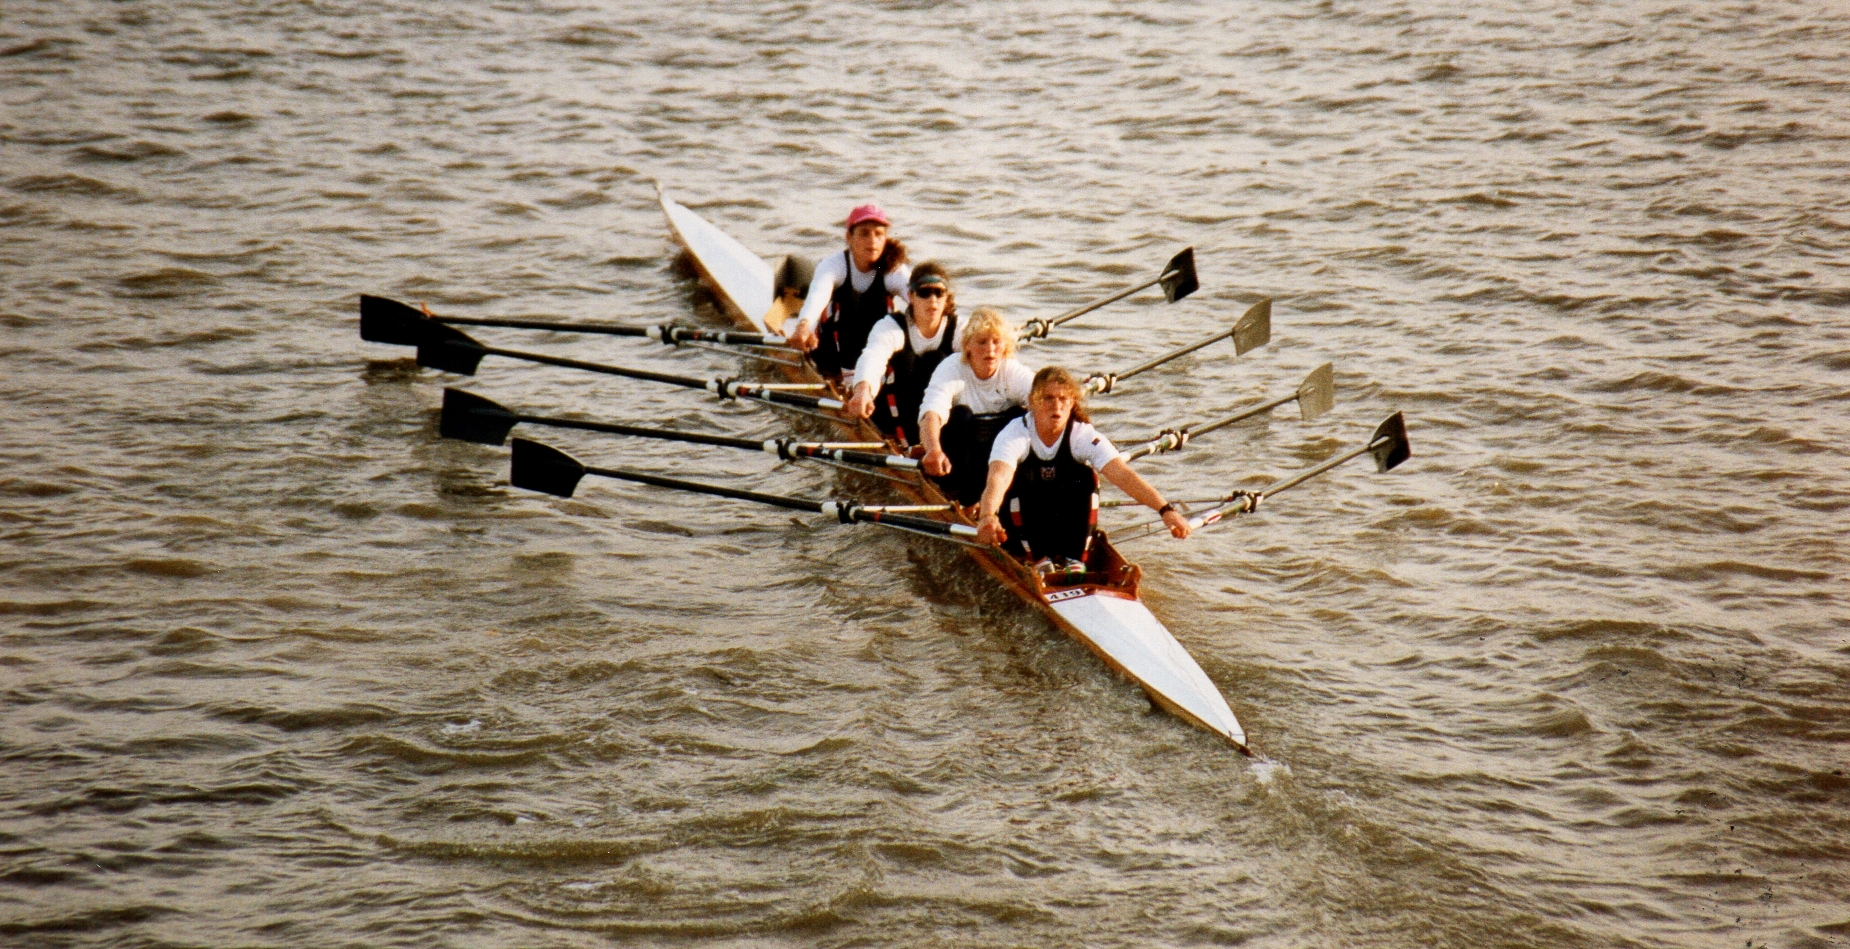 women's quad in wooden boat